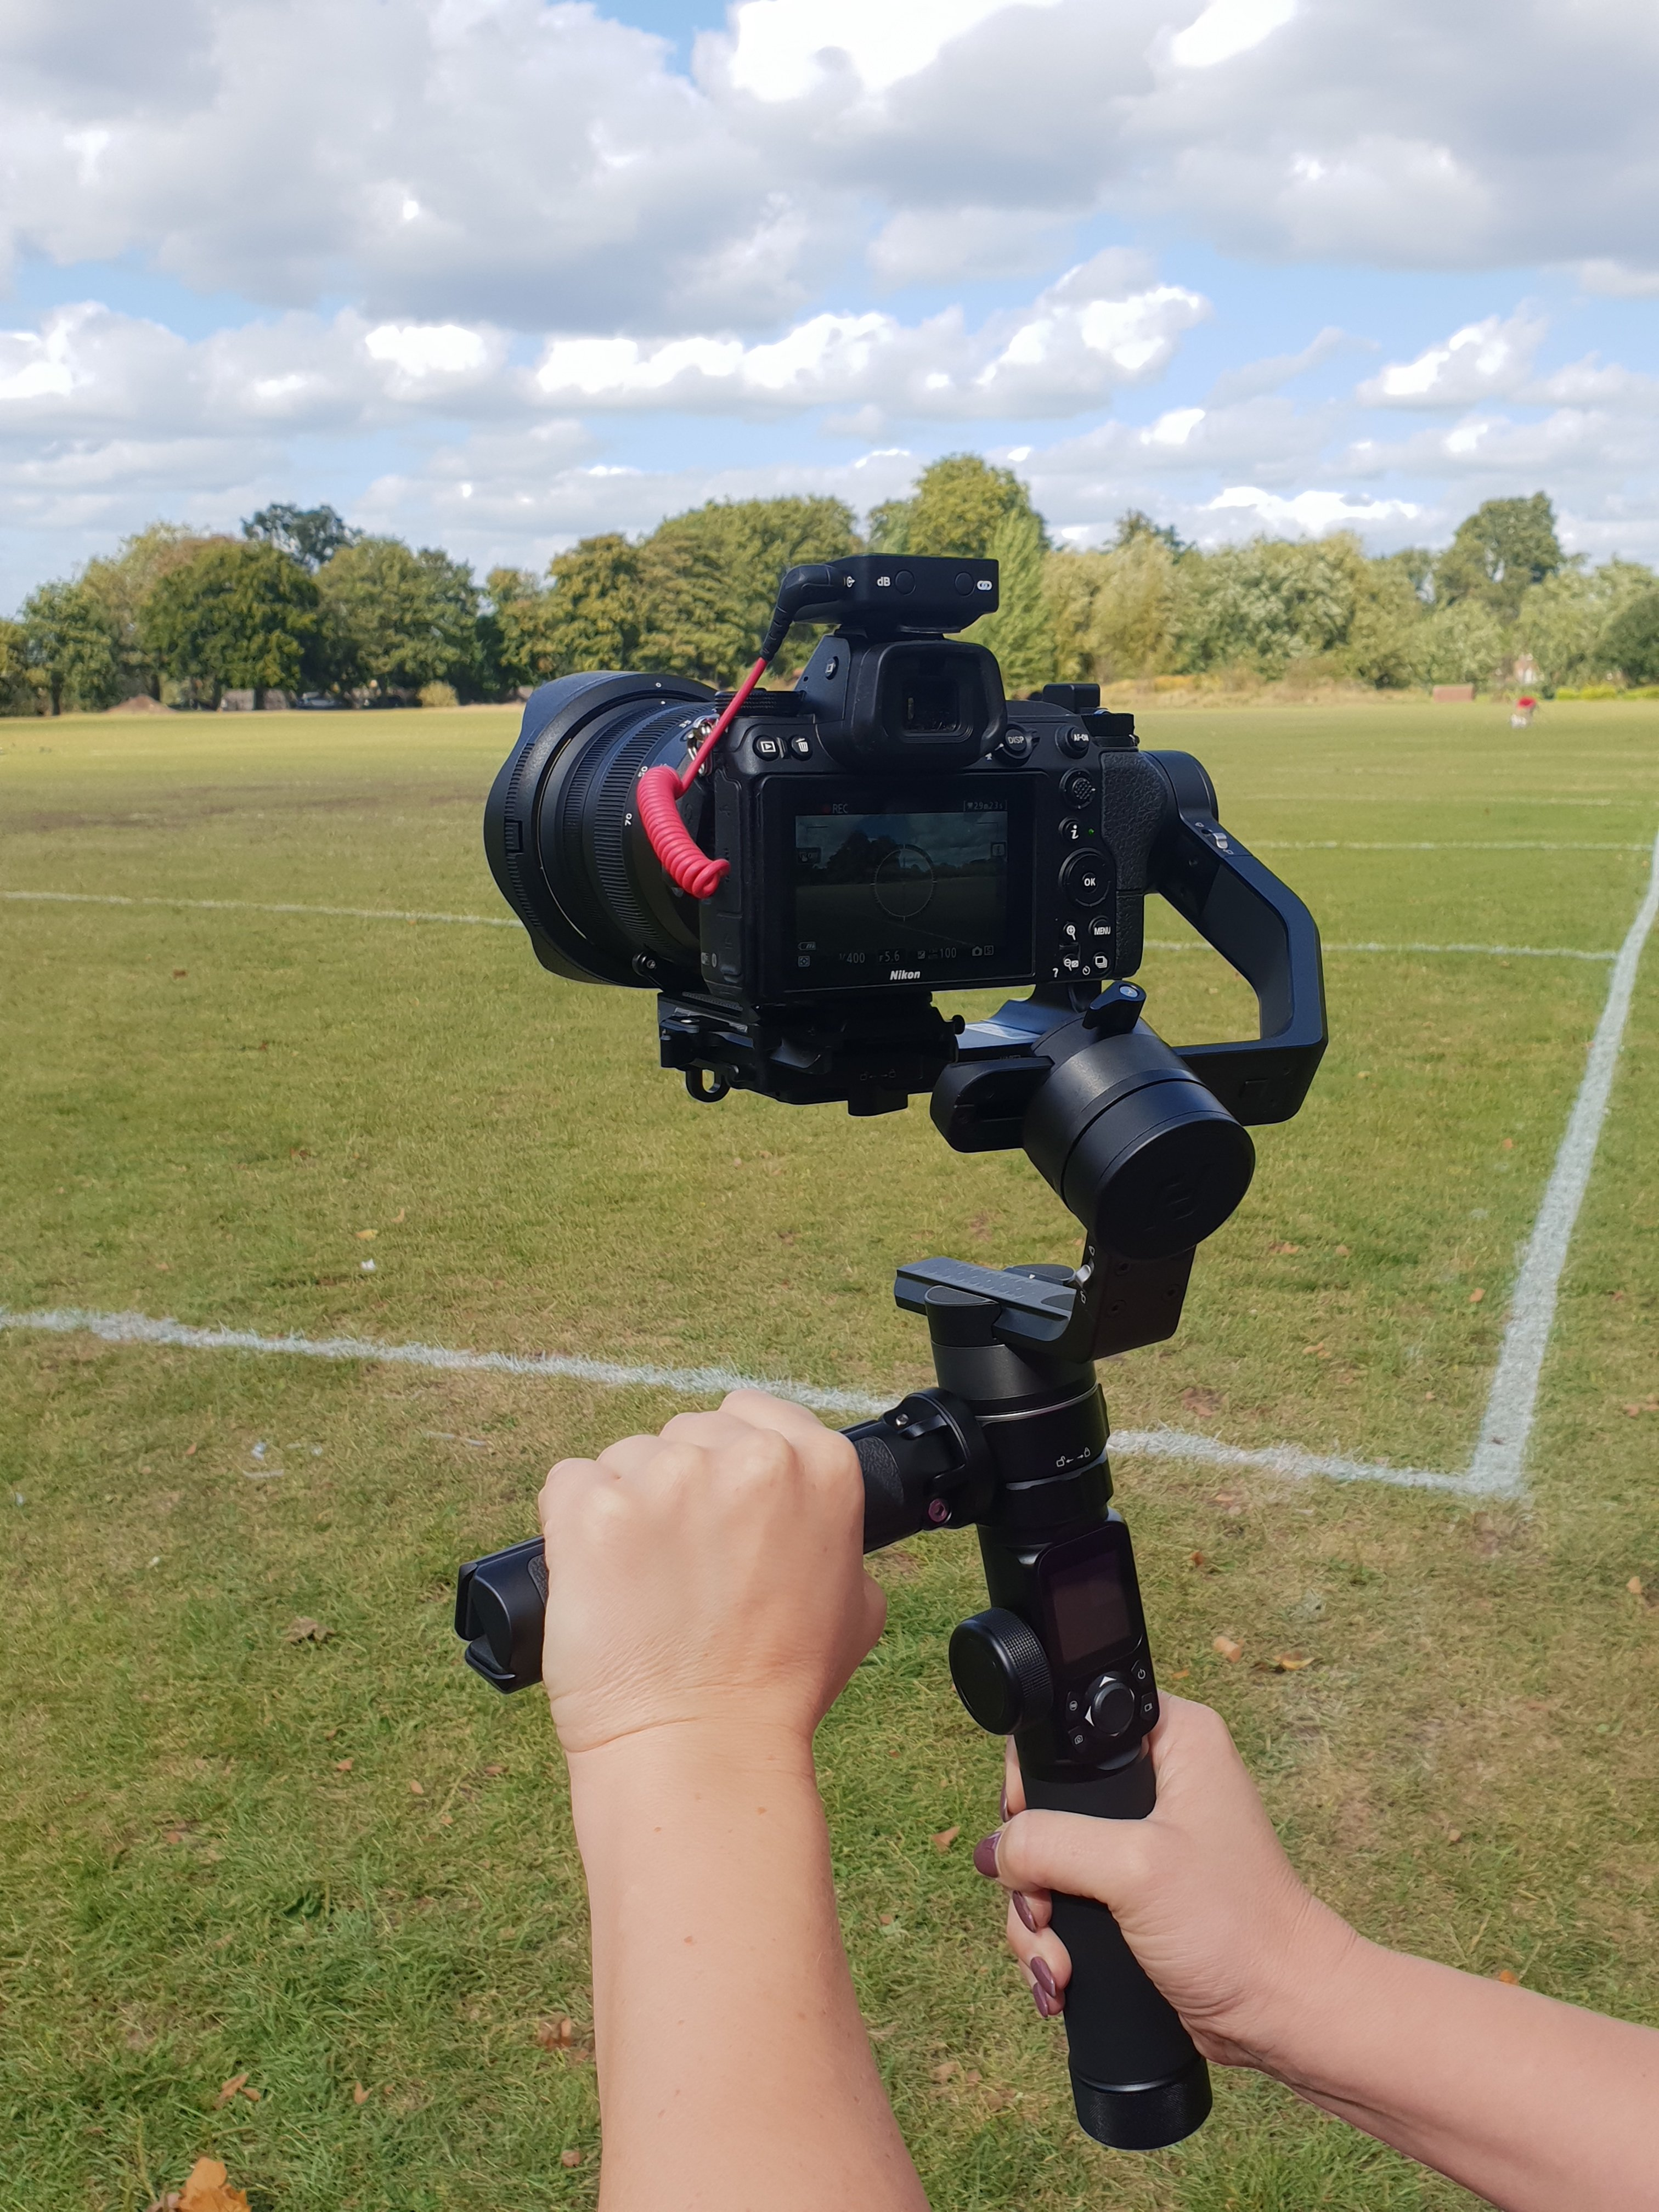 AK4500 gimbal stabiliser review